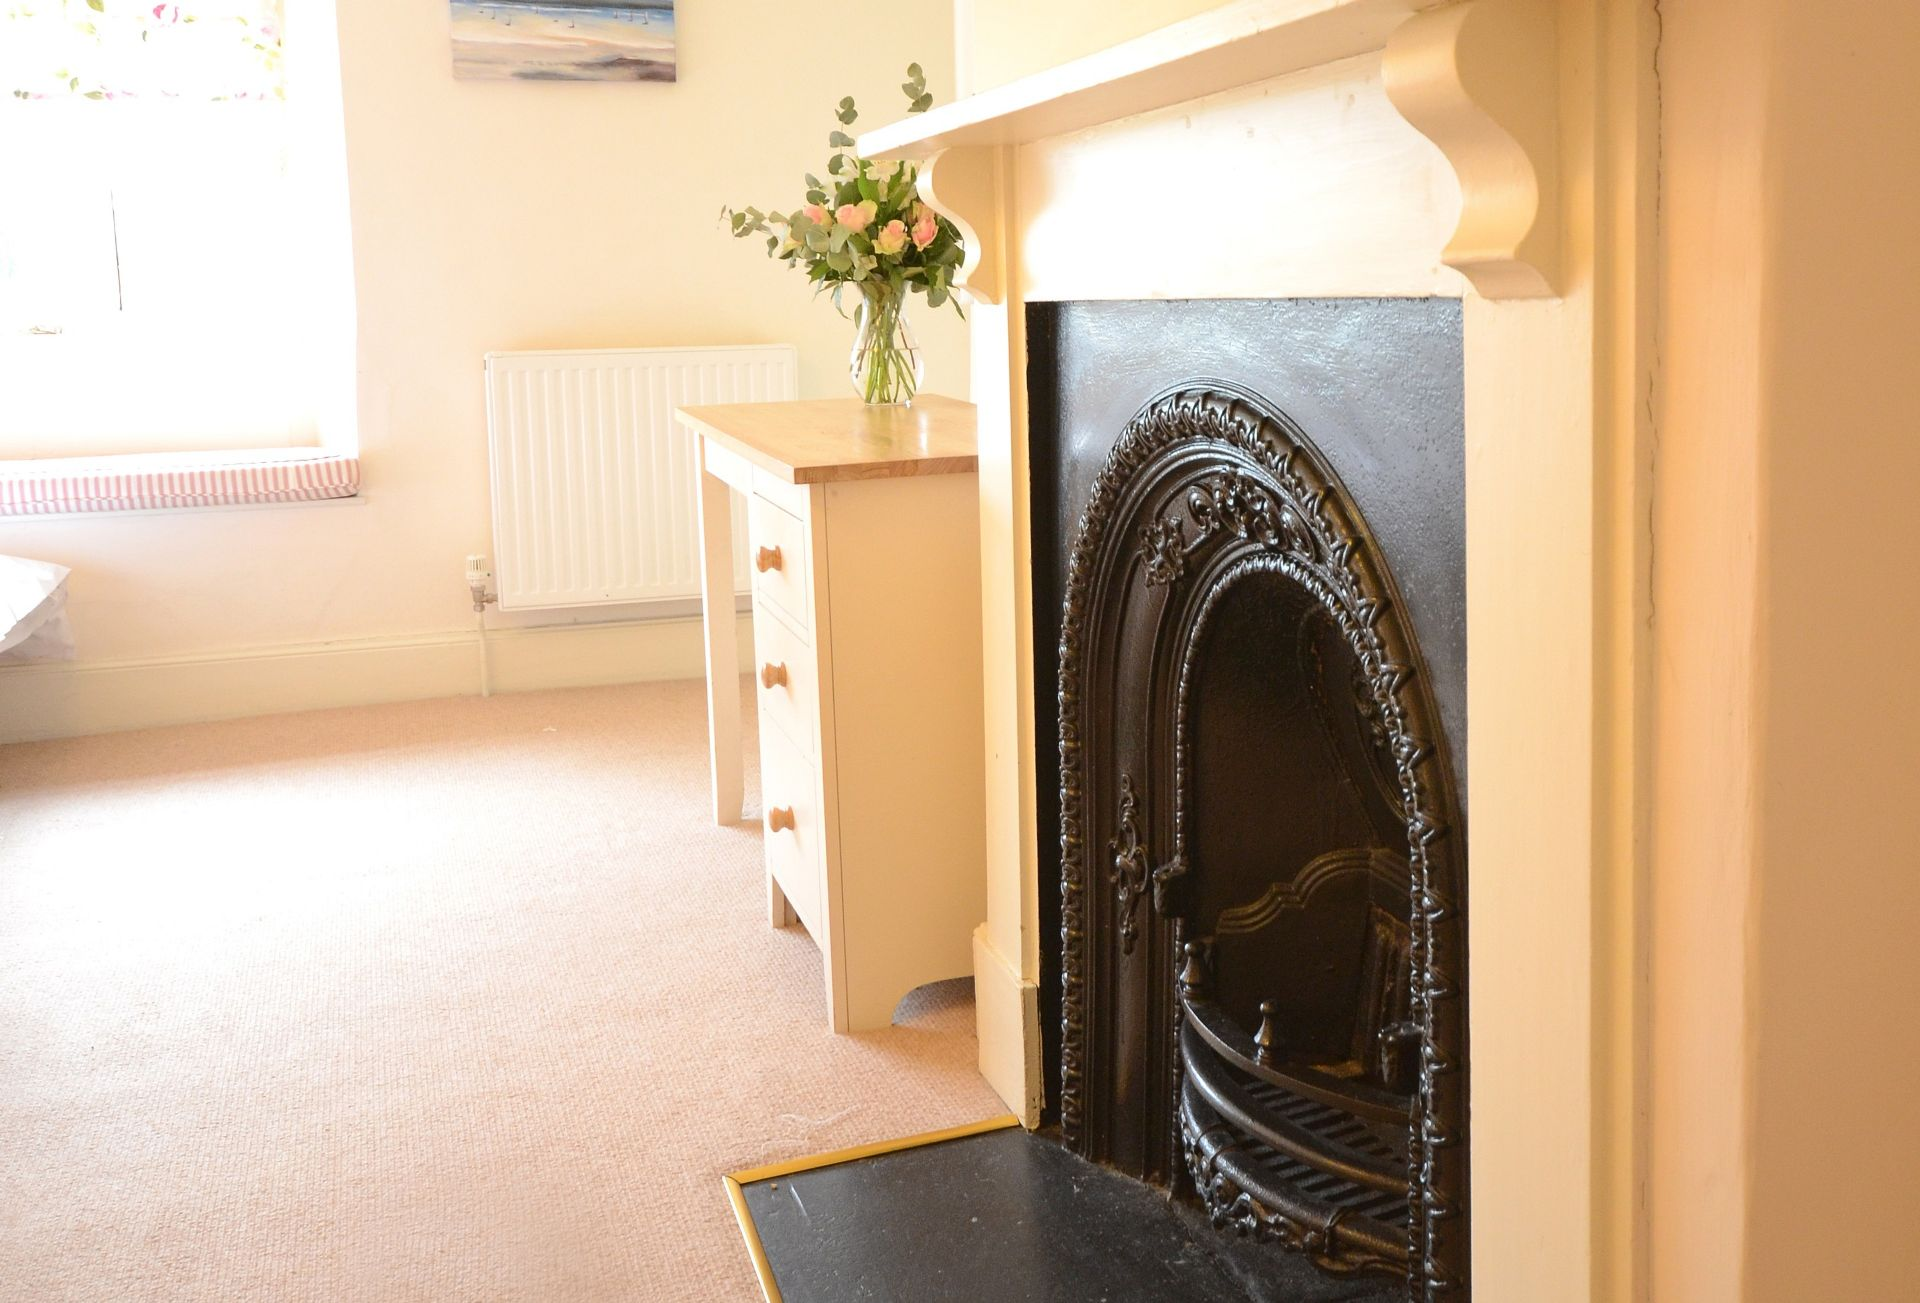 An aspect of the fireplace